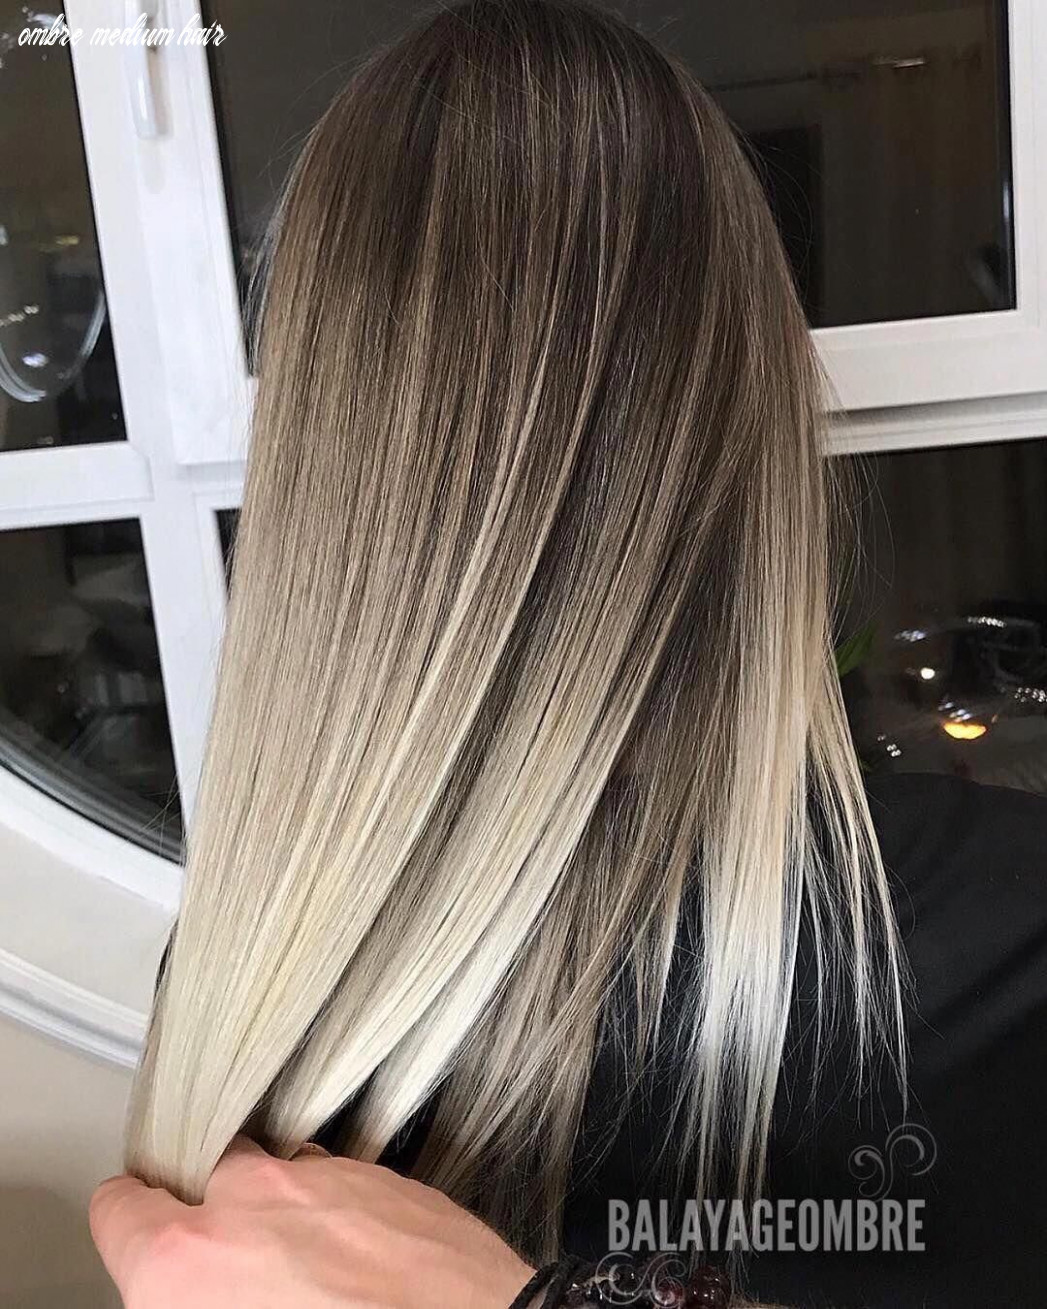 9 Ombre Balayage Hairstyles for Medium Length Hair, Hair Color ...